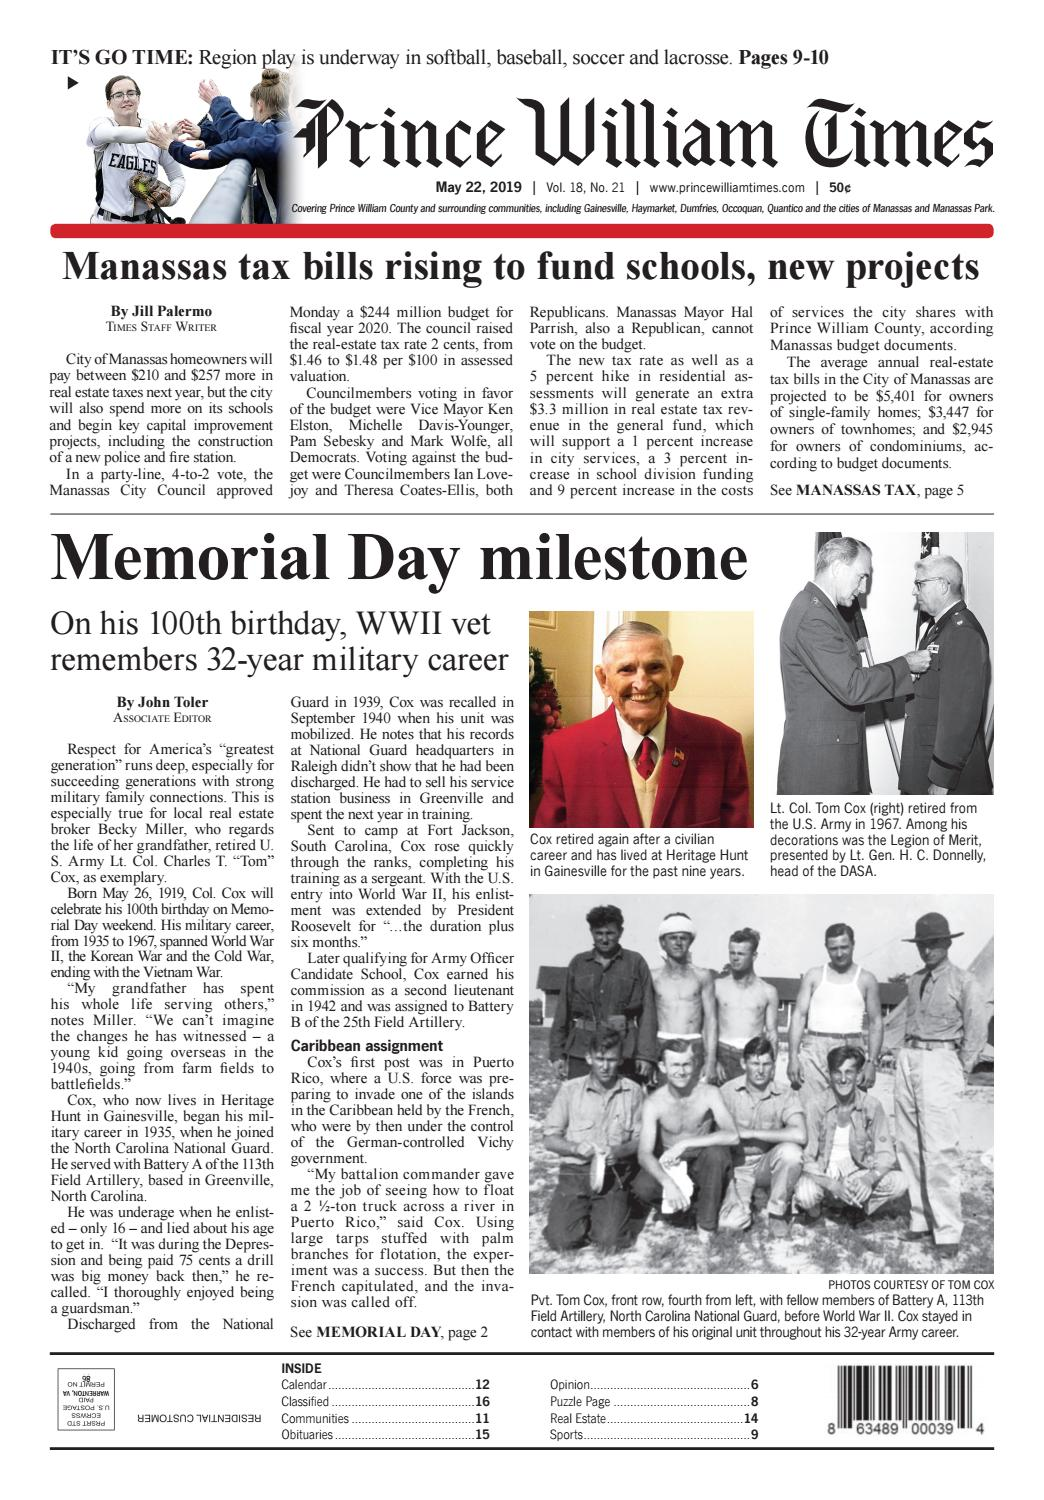 Prince William Times 05/22/19 by Fauquier Times - issuu